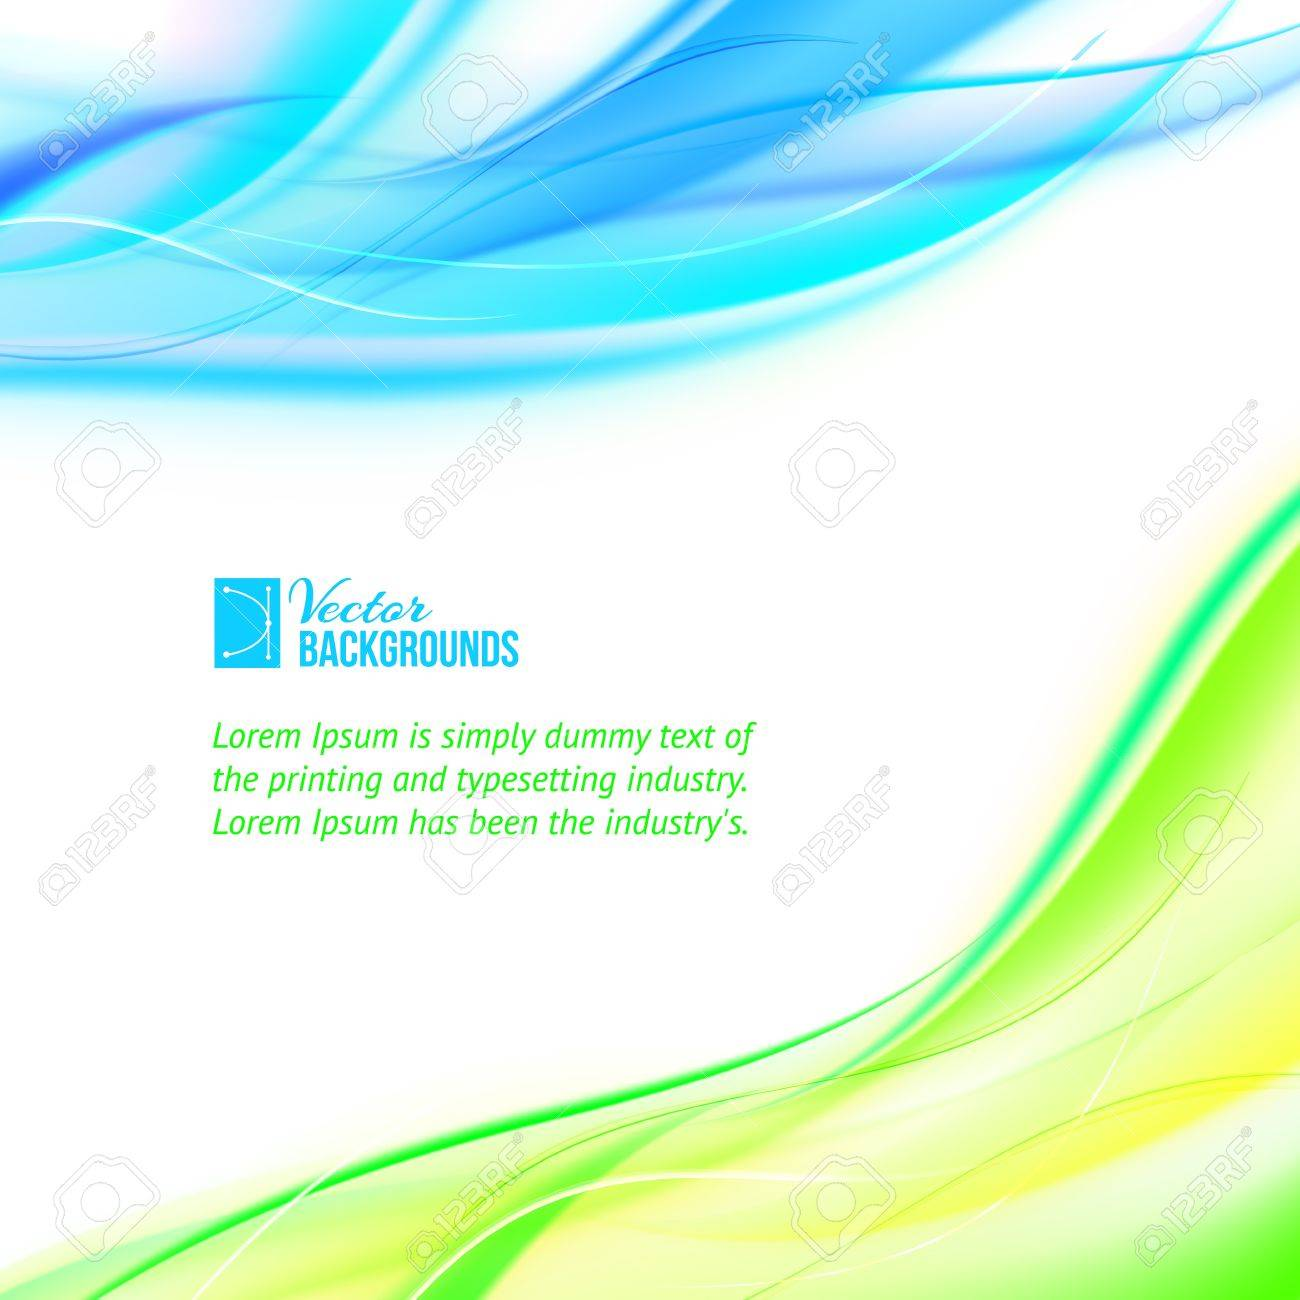 Abstract banner illustration, contains transparencies, gradients and effects Stock Vector - 20875878